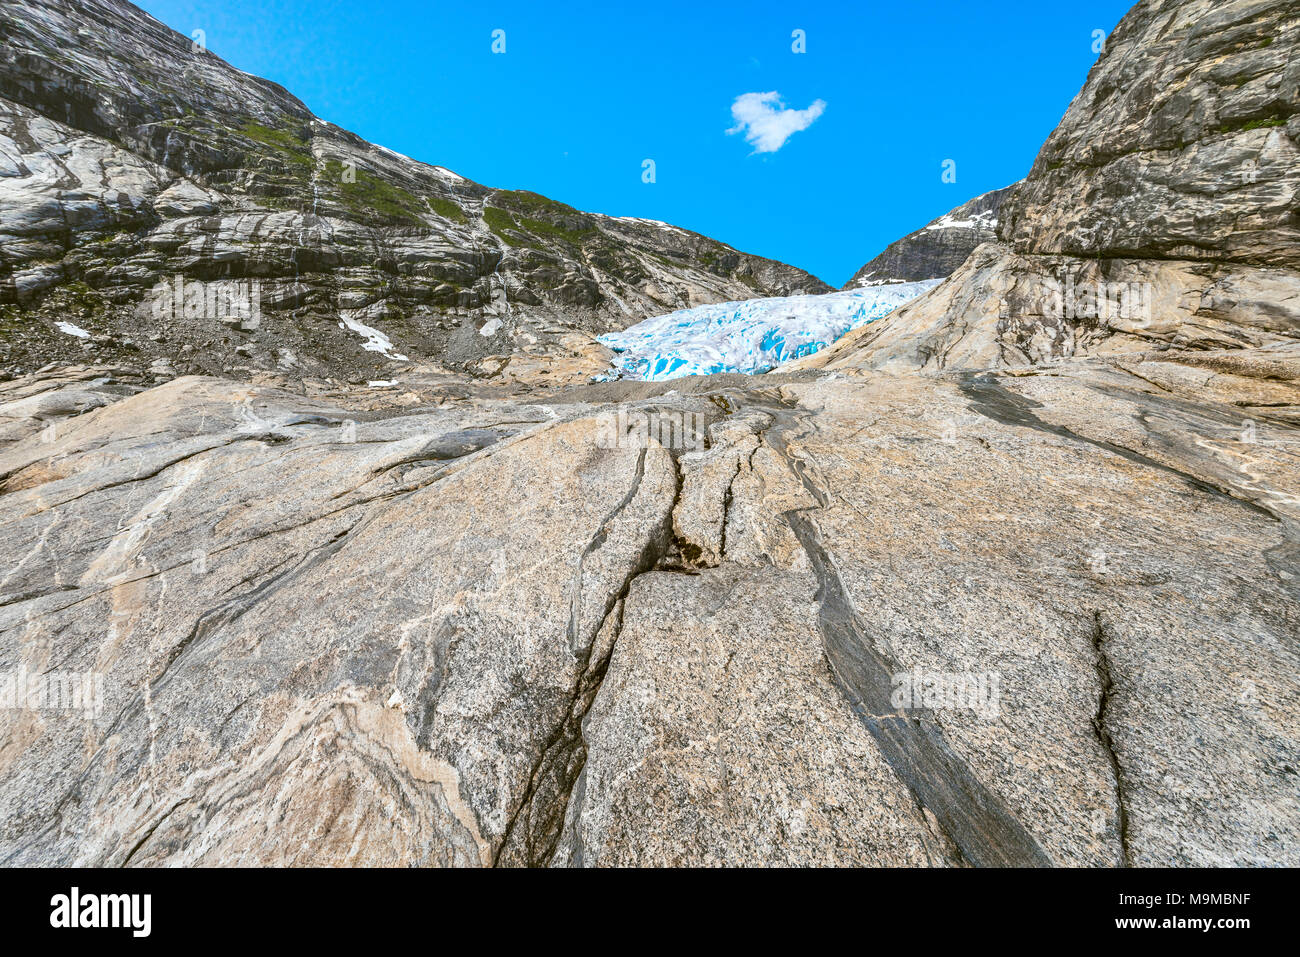 the traces of Nigardsbreen glacier, Norway, Jostedalsbreen National Park - Stock Image